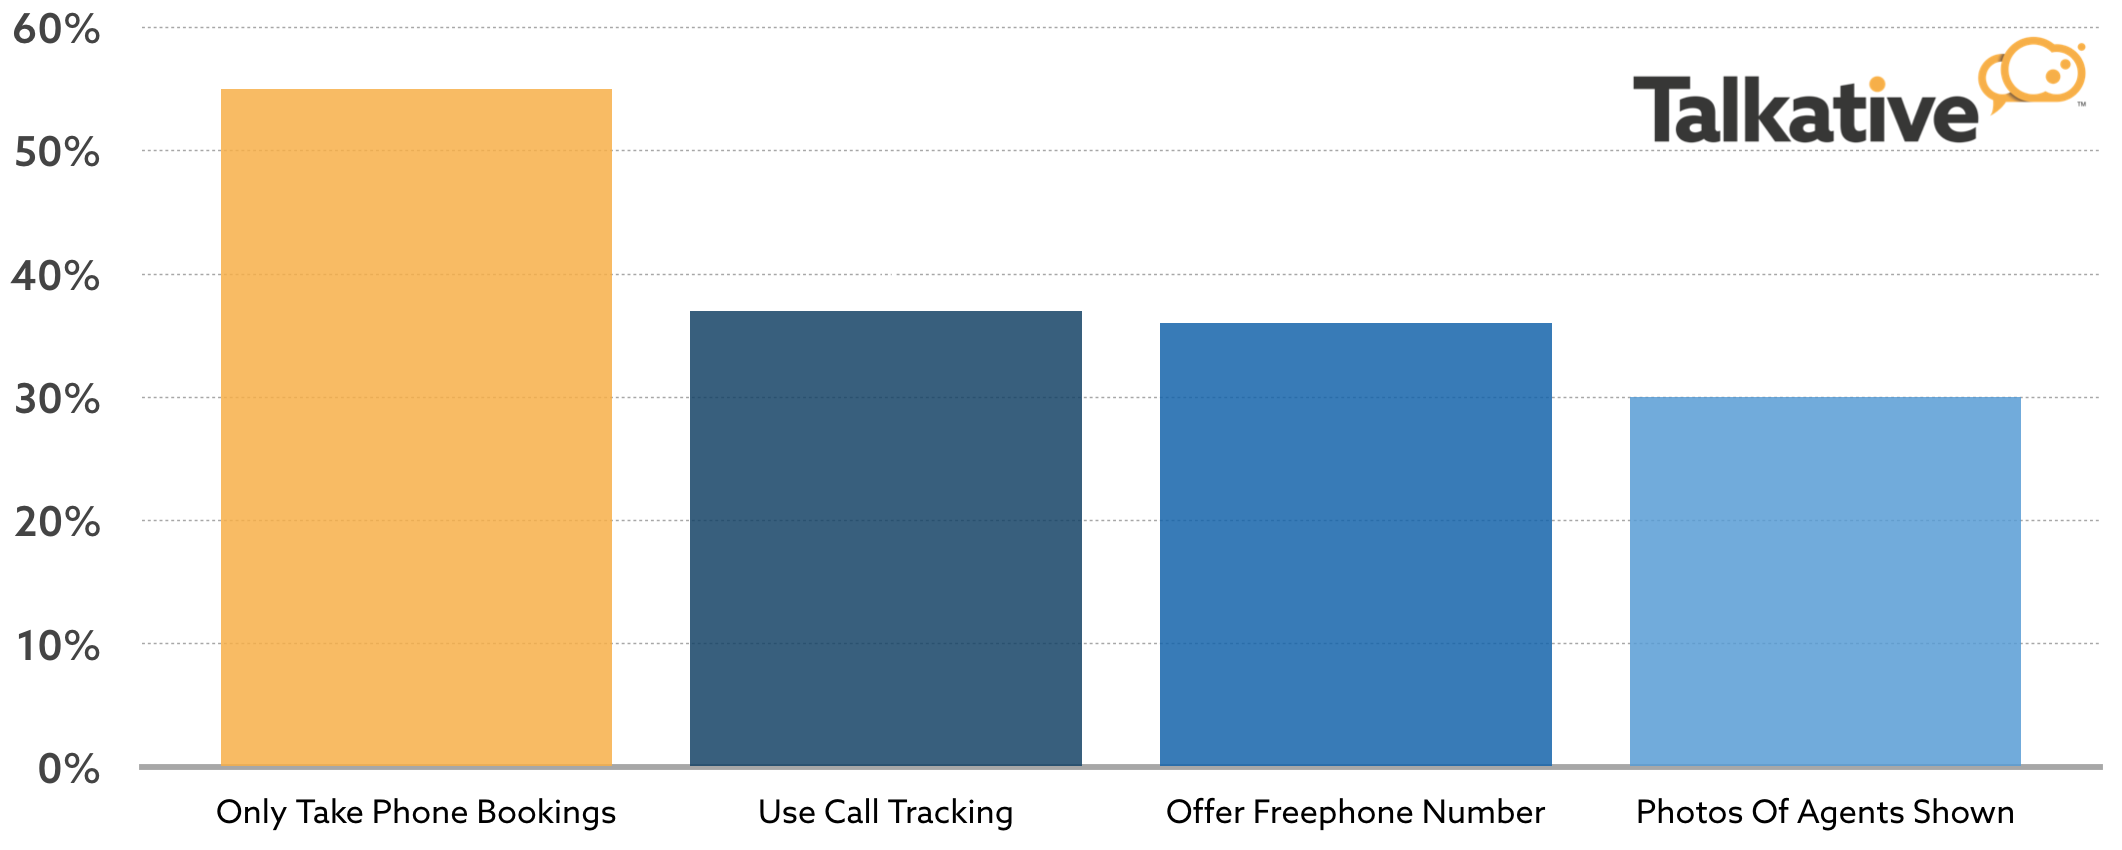 55% of travel companies only take bookings via calls